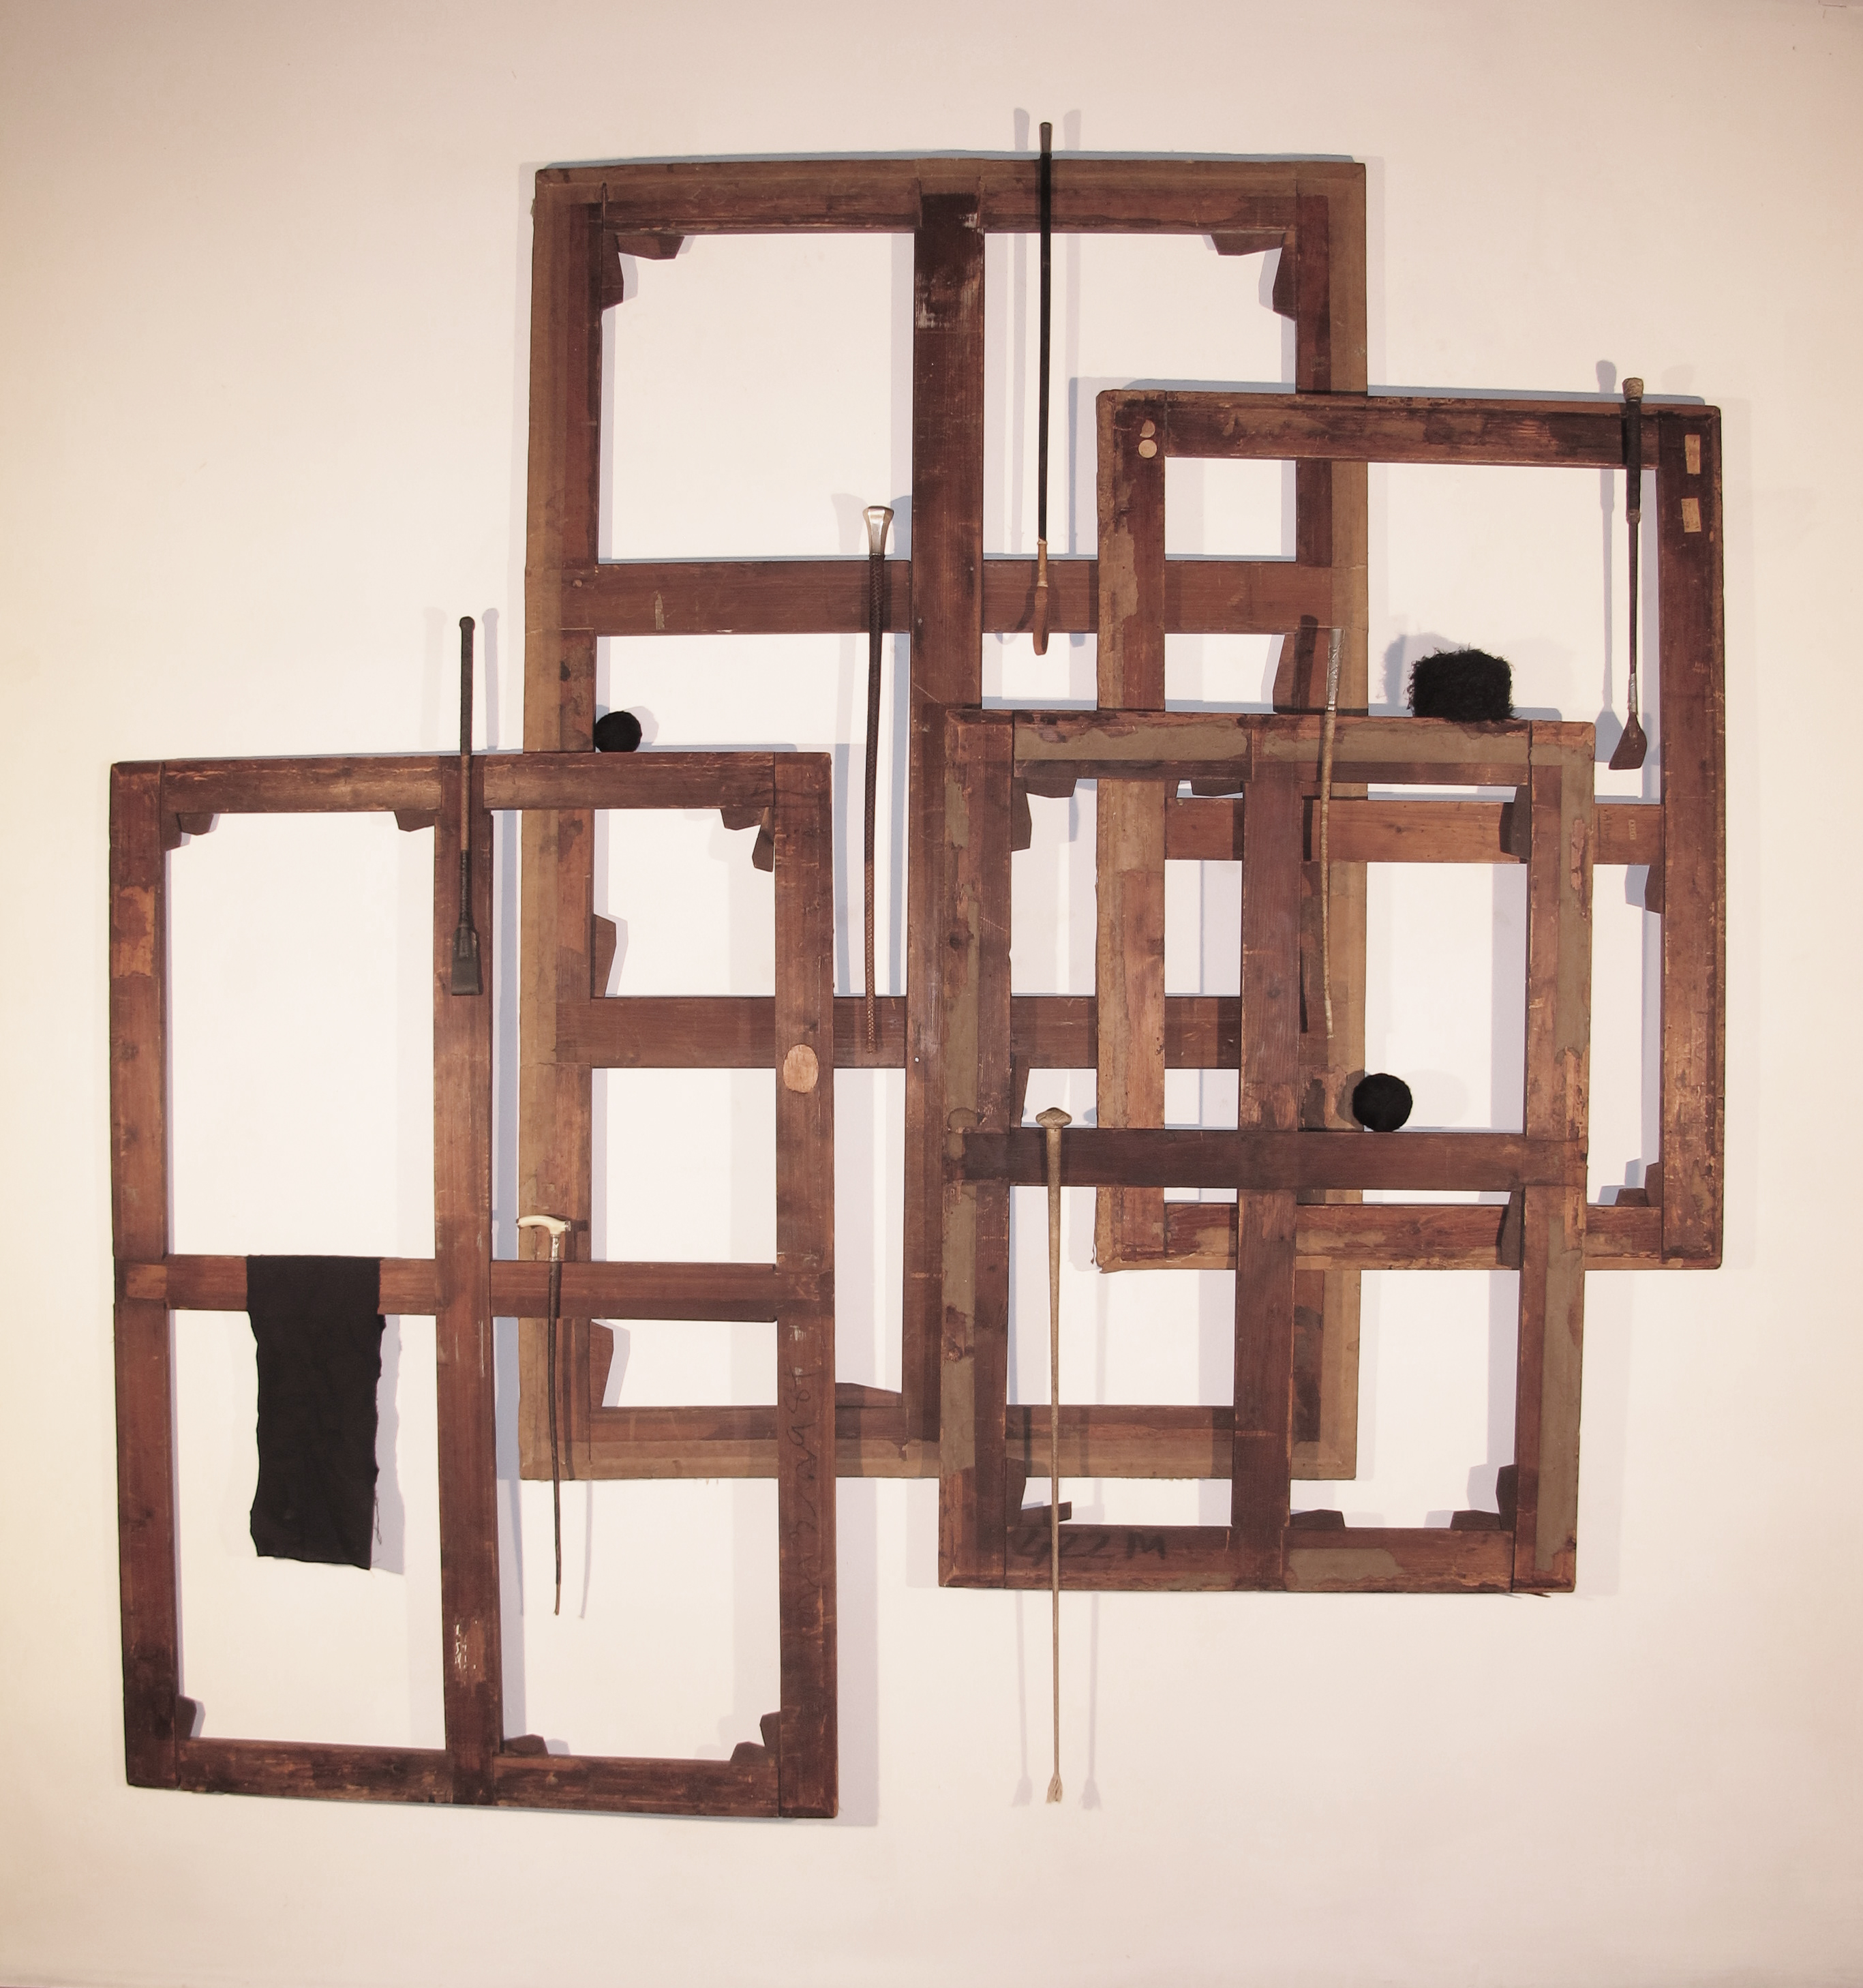 Maurizio Pellegrin, Shapes, 2014,81x79 inches, antique stretchers, crops, fabr